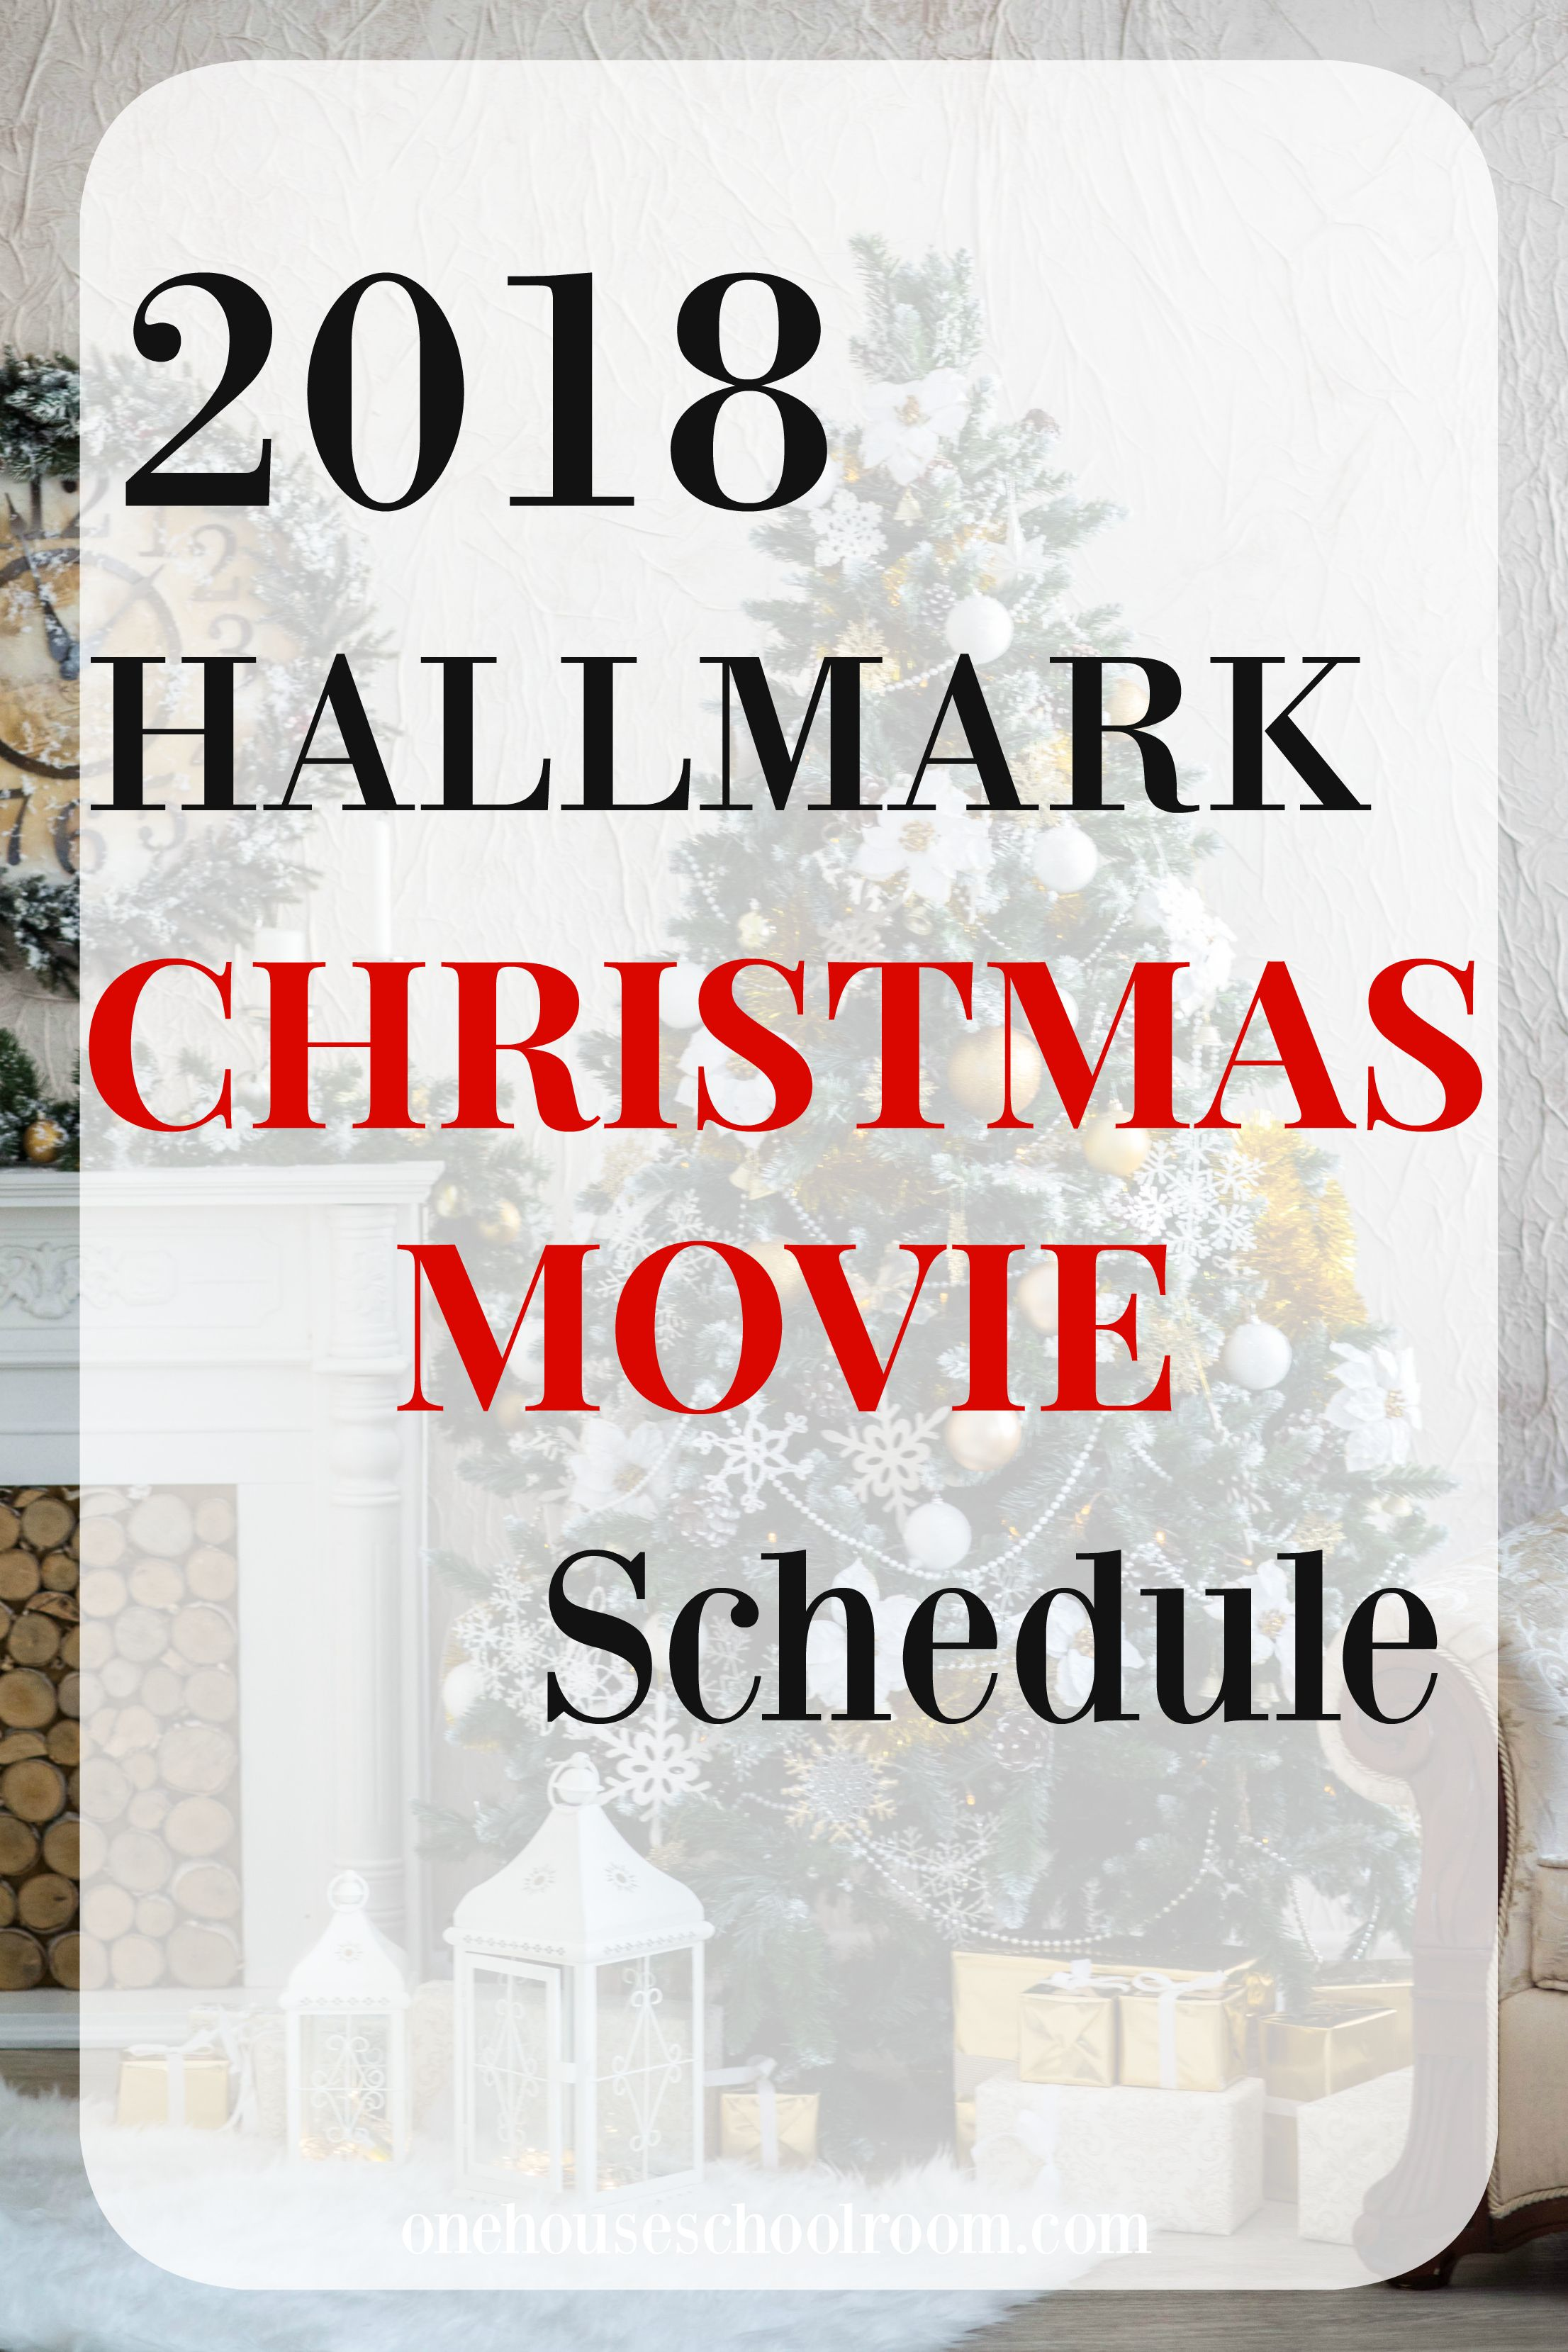 2018 Hallmark Christmas Movies | Best of One House Schoolroom ...